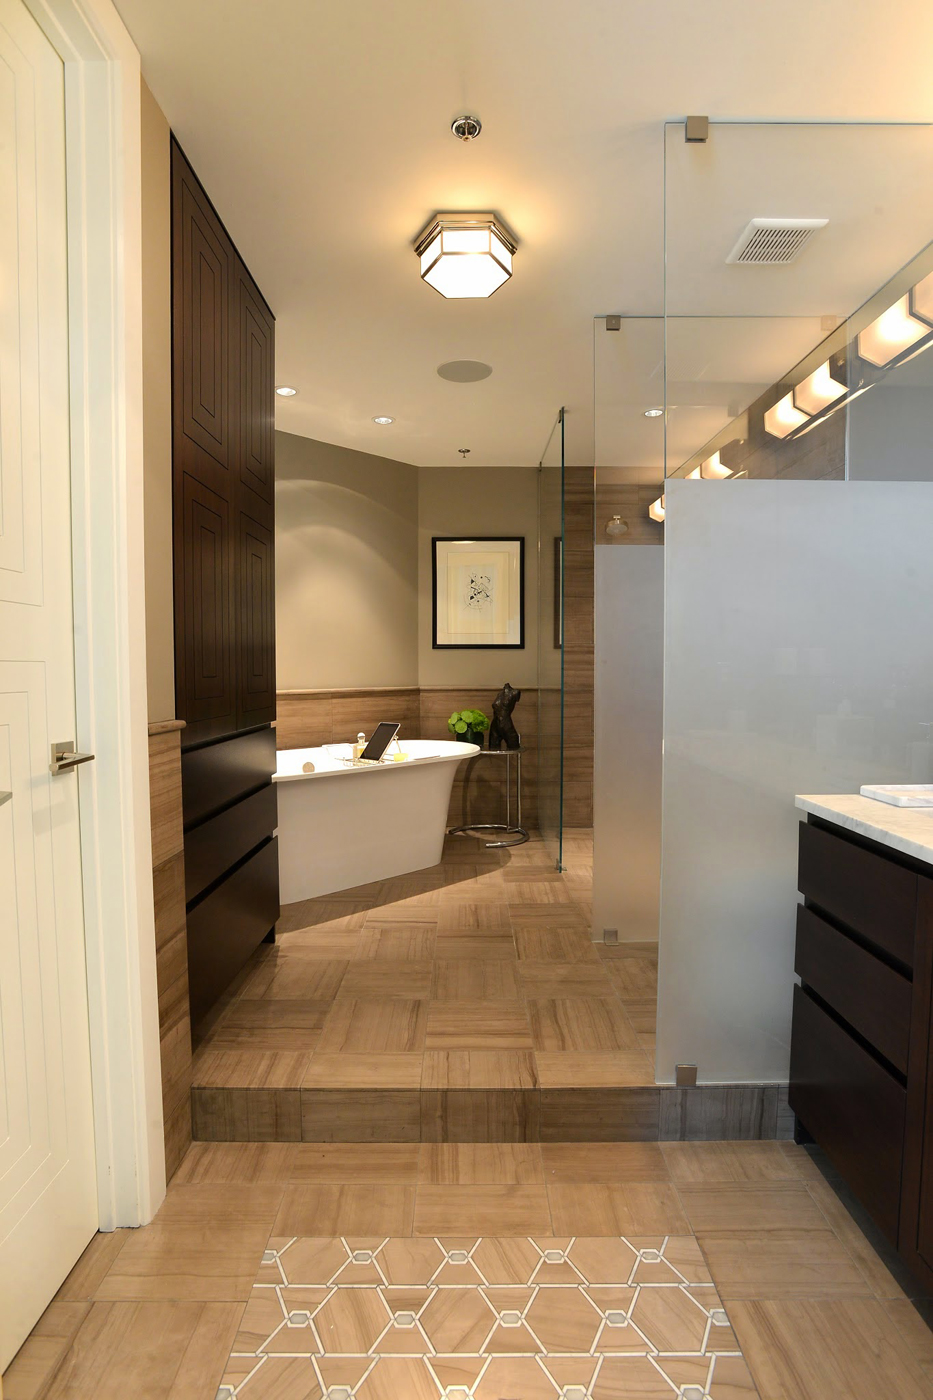 Modern master bathroom with glass panel partitions, strie patterned honed marble floors, and Victoria + Albert bathtub | Savage Interior Design